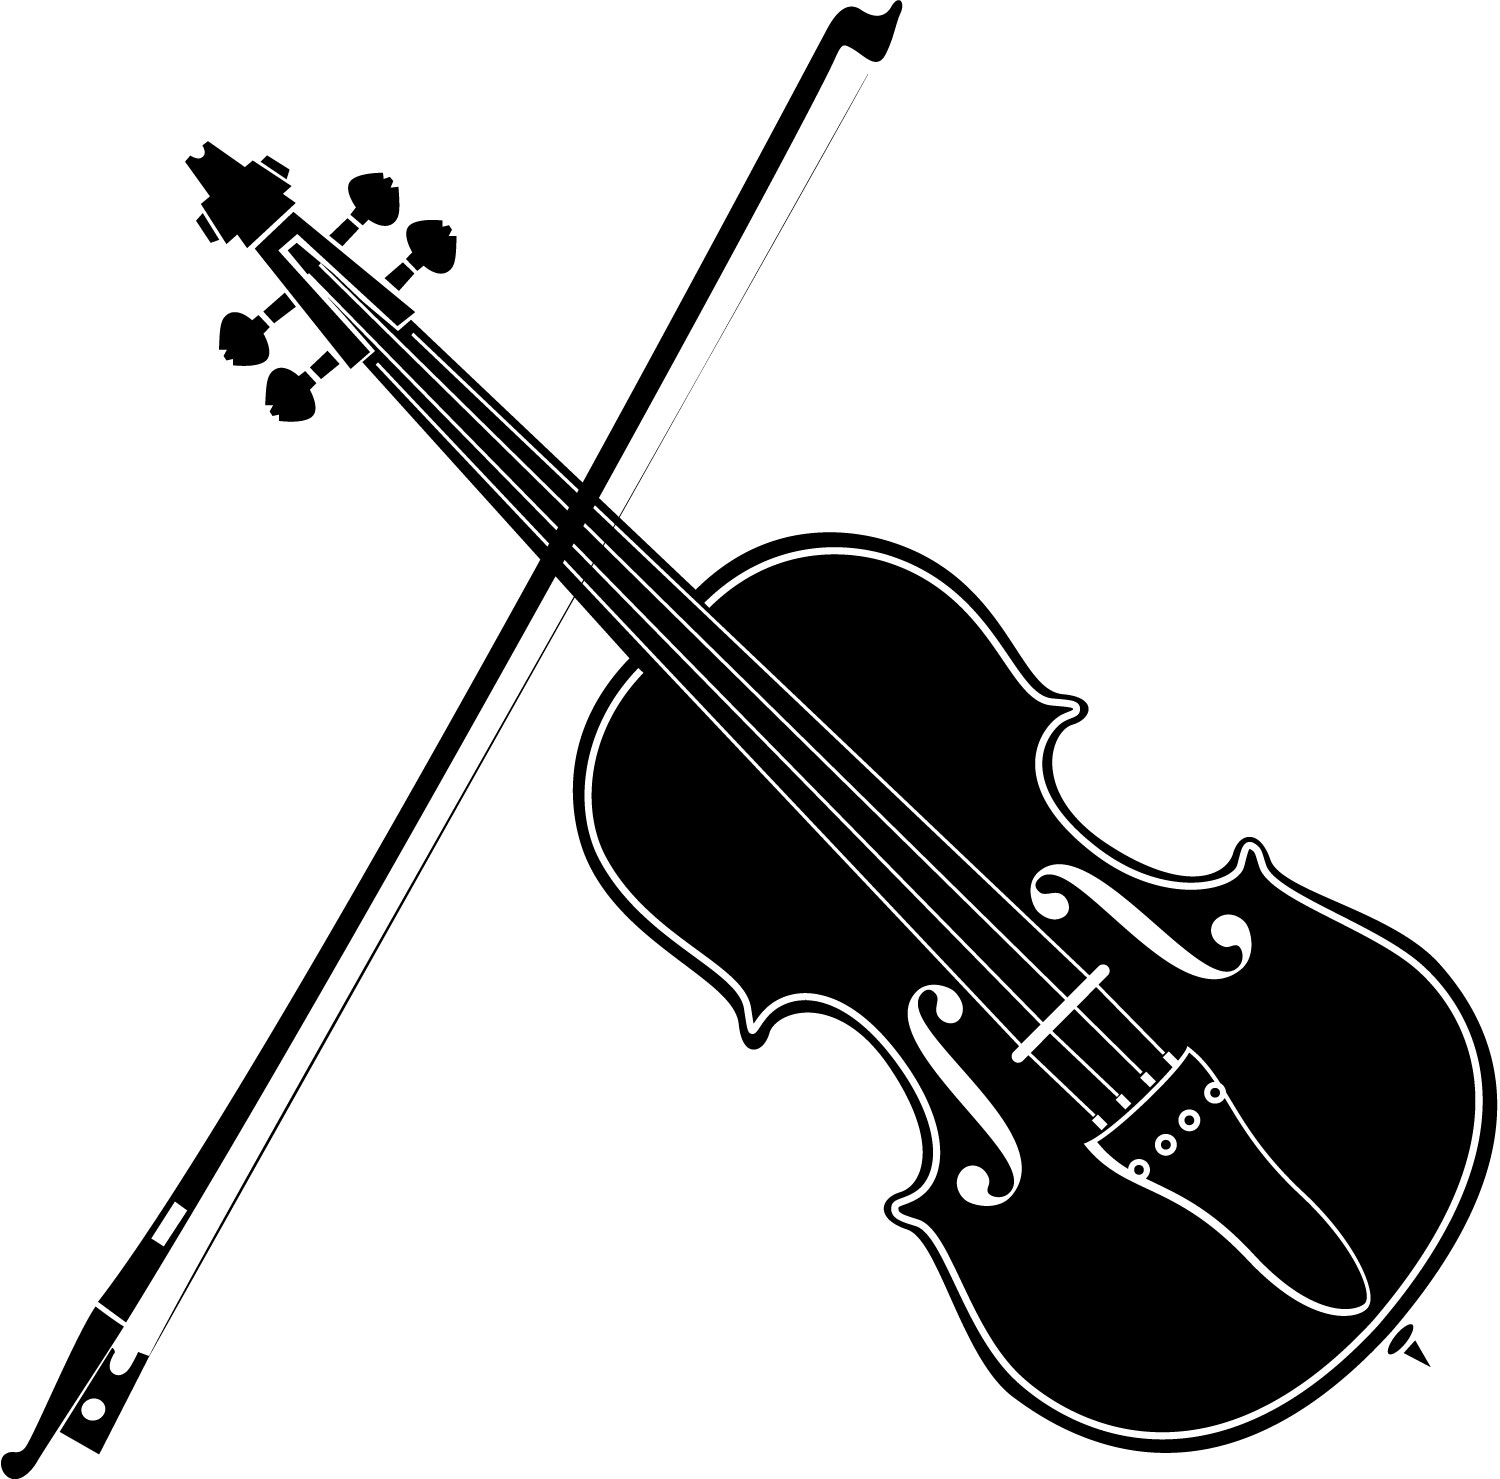 32 violin free cliparts that you can download to you computer and use ...